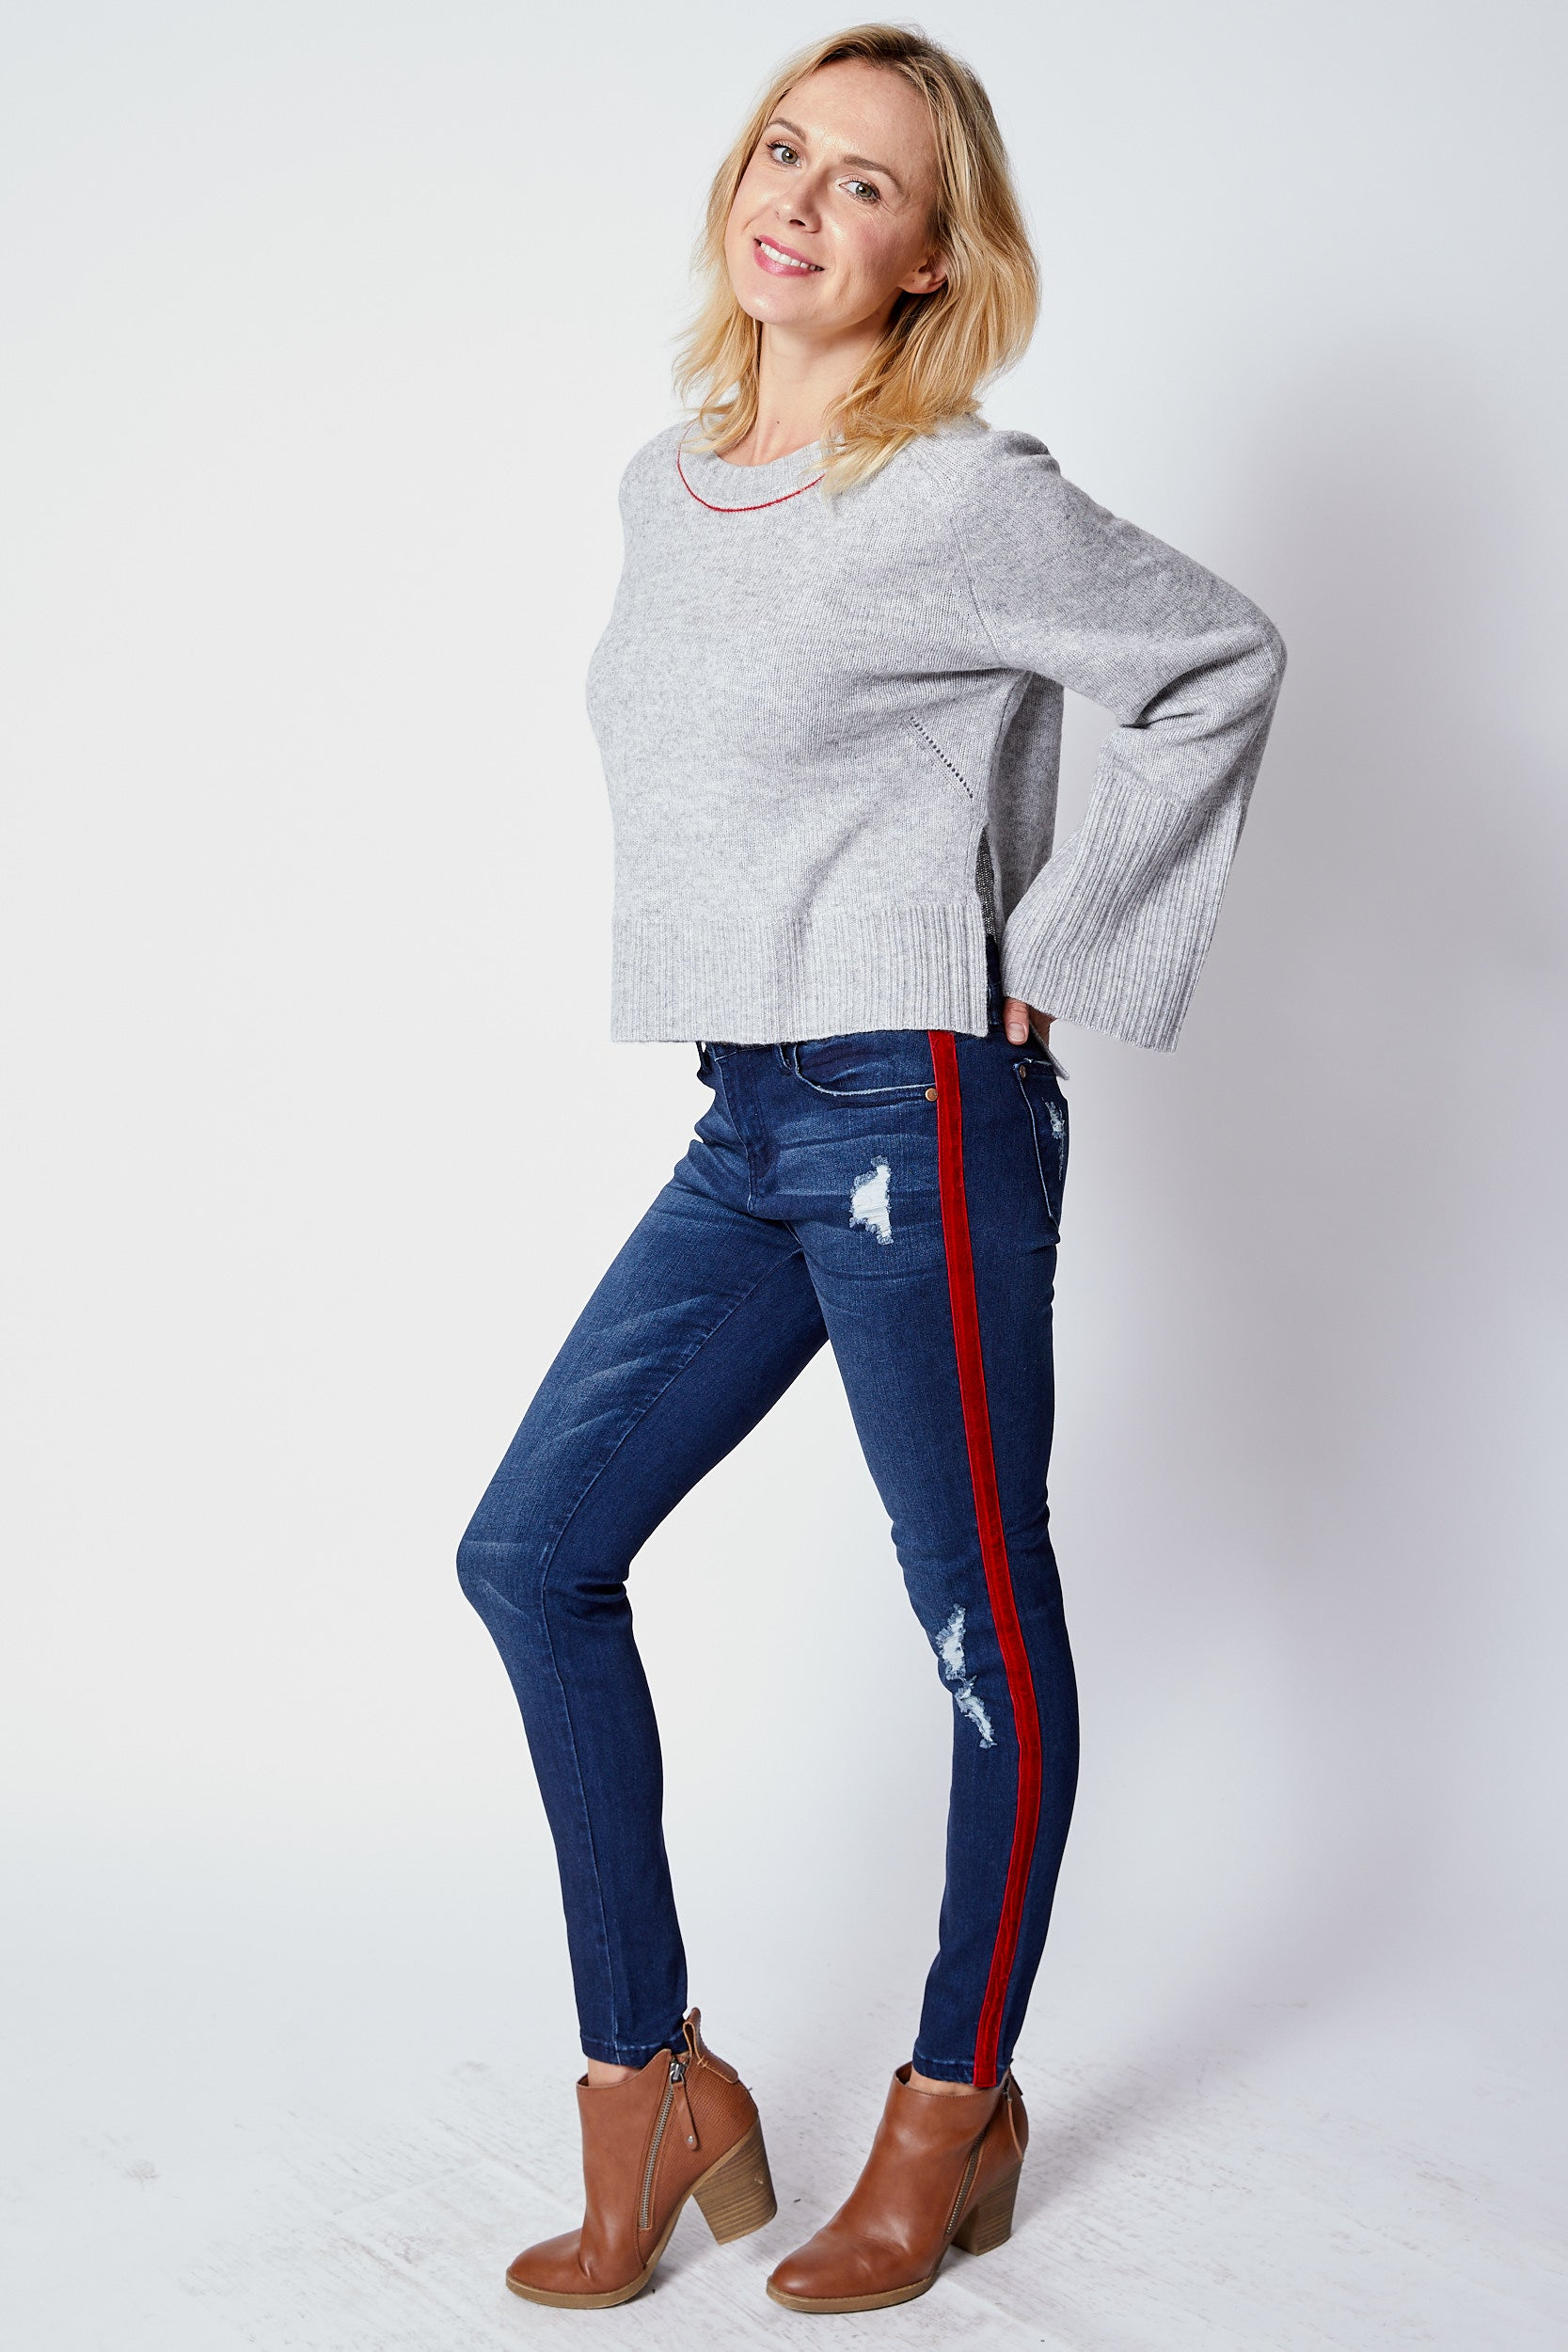 Jeans w/ Red Velvet Stripe - Jacqueline B Clothing